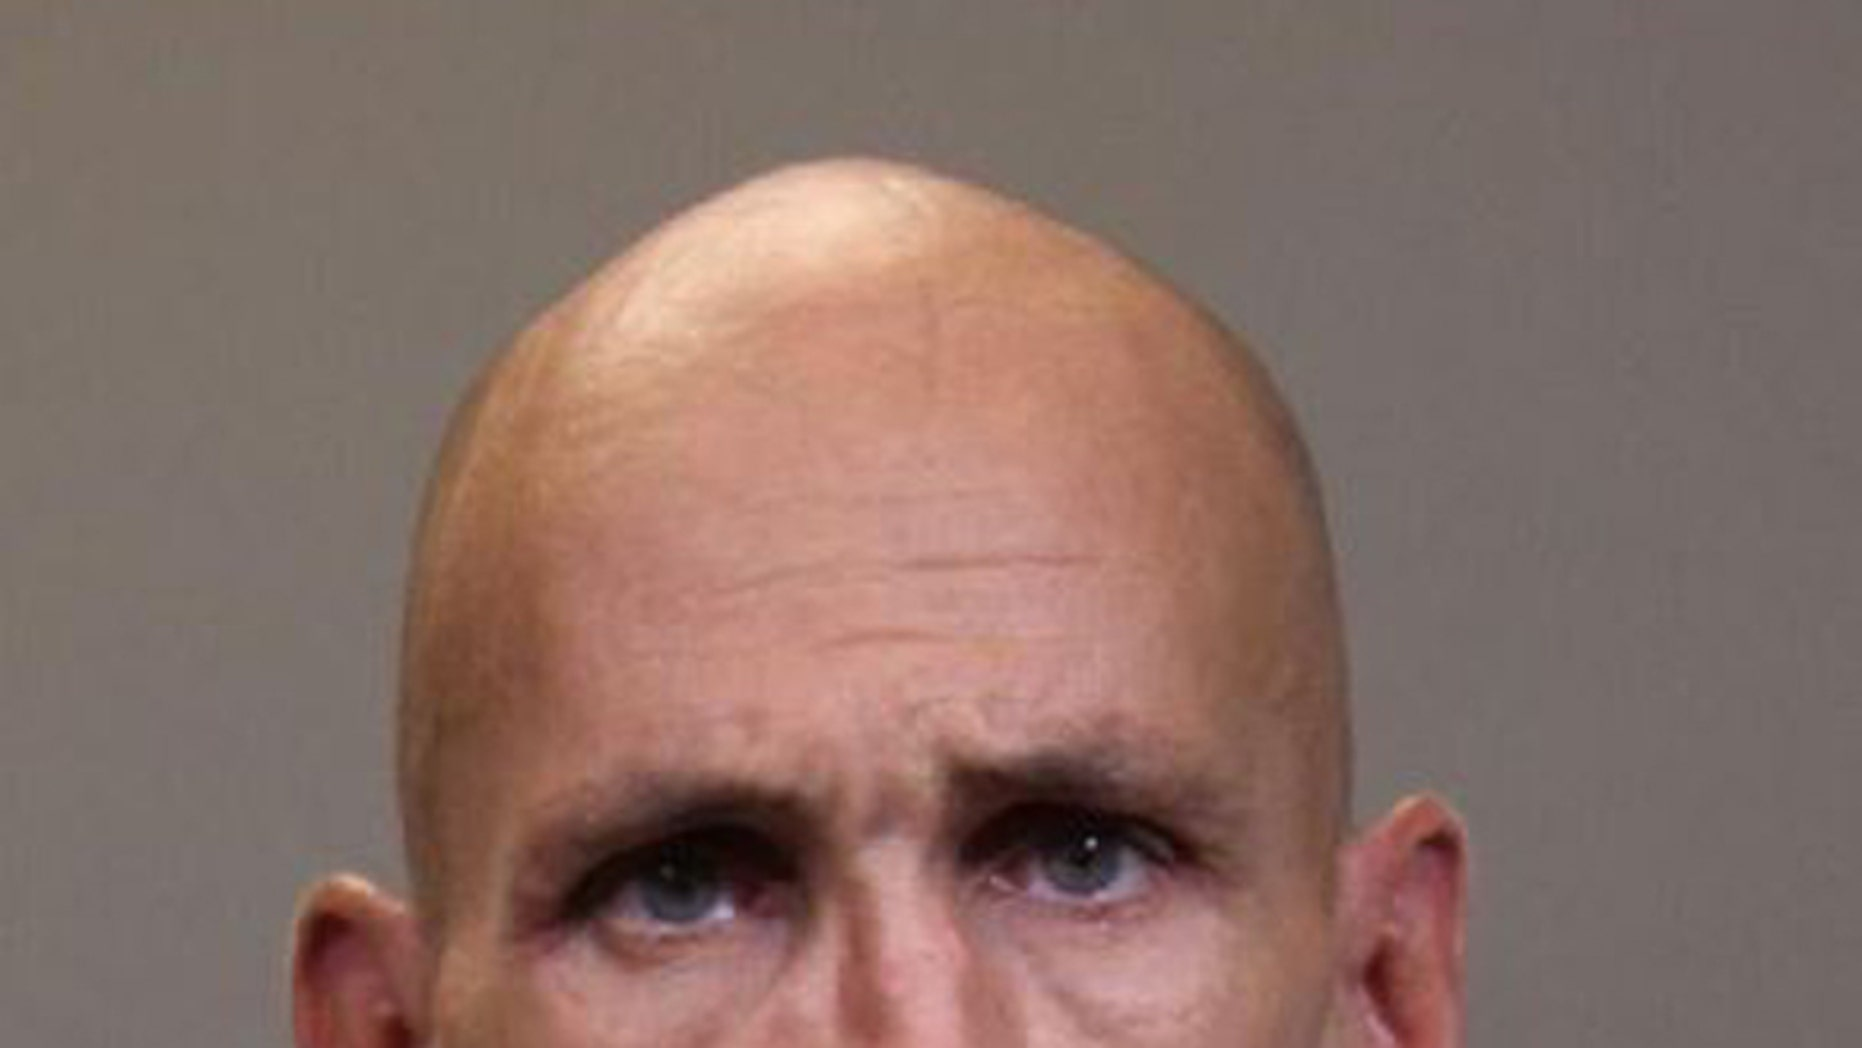 David Menser, 51, walked into a Huntington Bank in Columbus on June 4 and gave the teller a note saying he was armed and demanding money, authorities said.